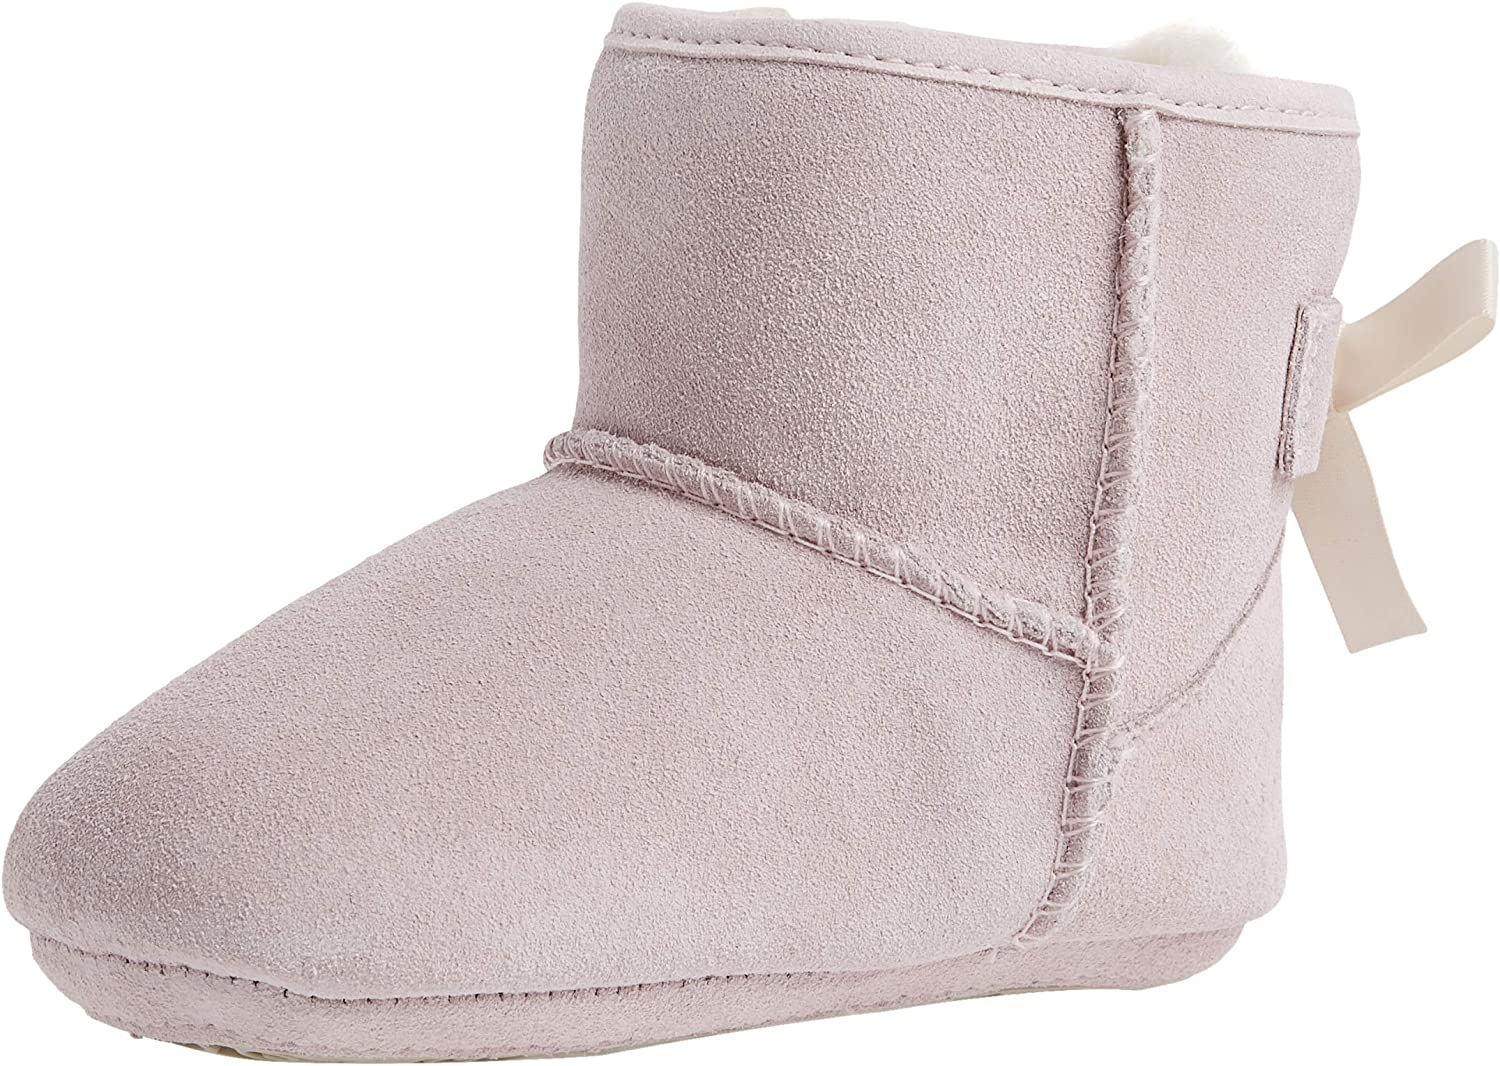 UGG Unisex-Child Outlet SALE Jesse Bow Beanie San Jose Mall Boot Ii